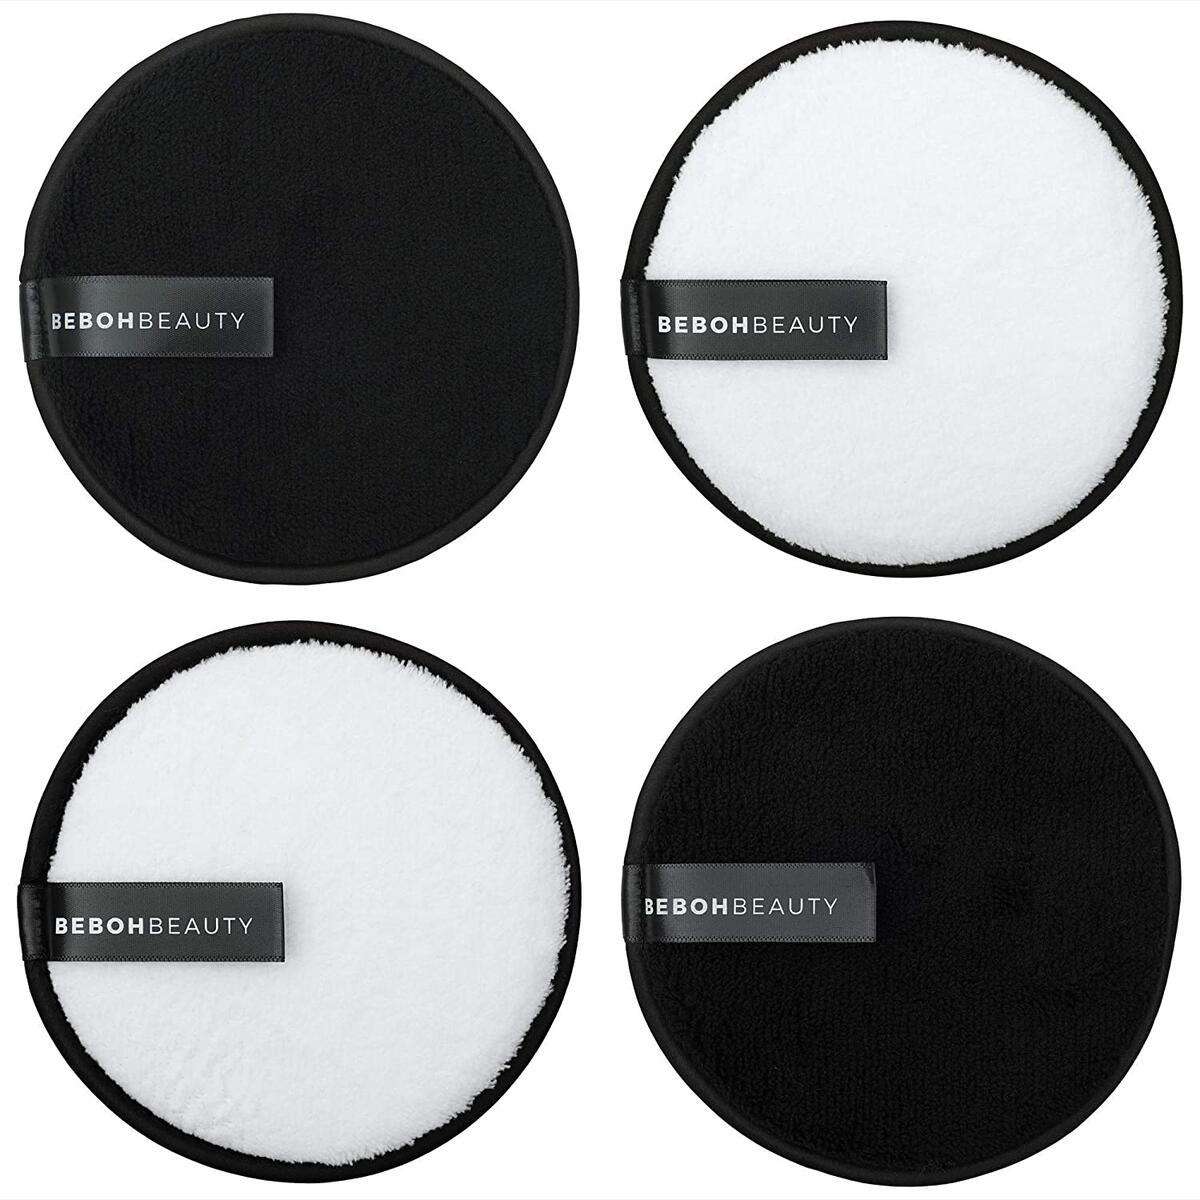 Reusable Makeup Eraser Pads | 4 Pack Large Eco Friendly Microfiber Makeup Remover Pads for Face Makeup | Perfect for Chemical Free Removal of Eye Makeup Foundation Highlighter and Lipstick